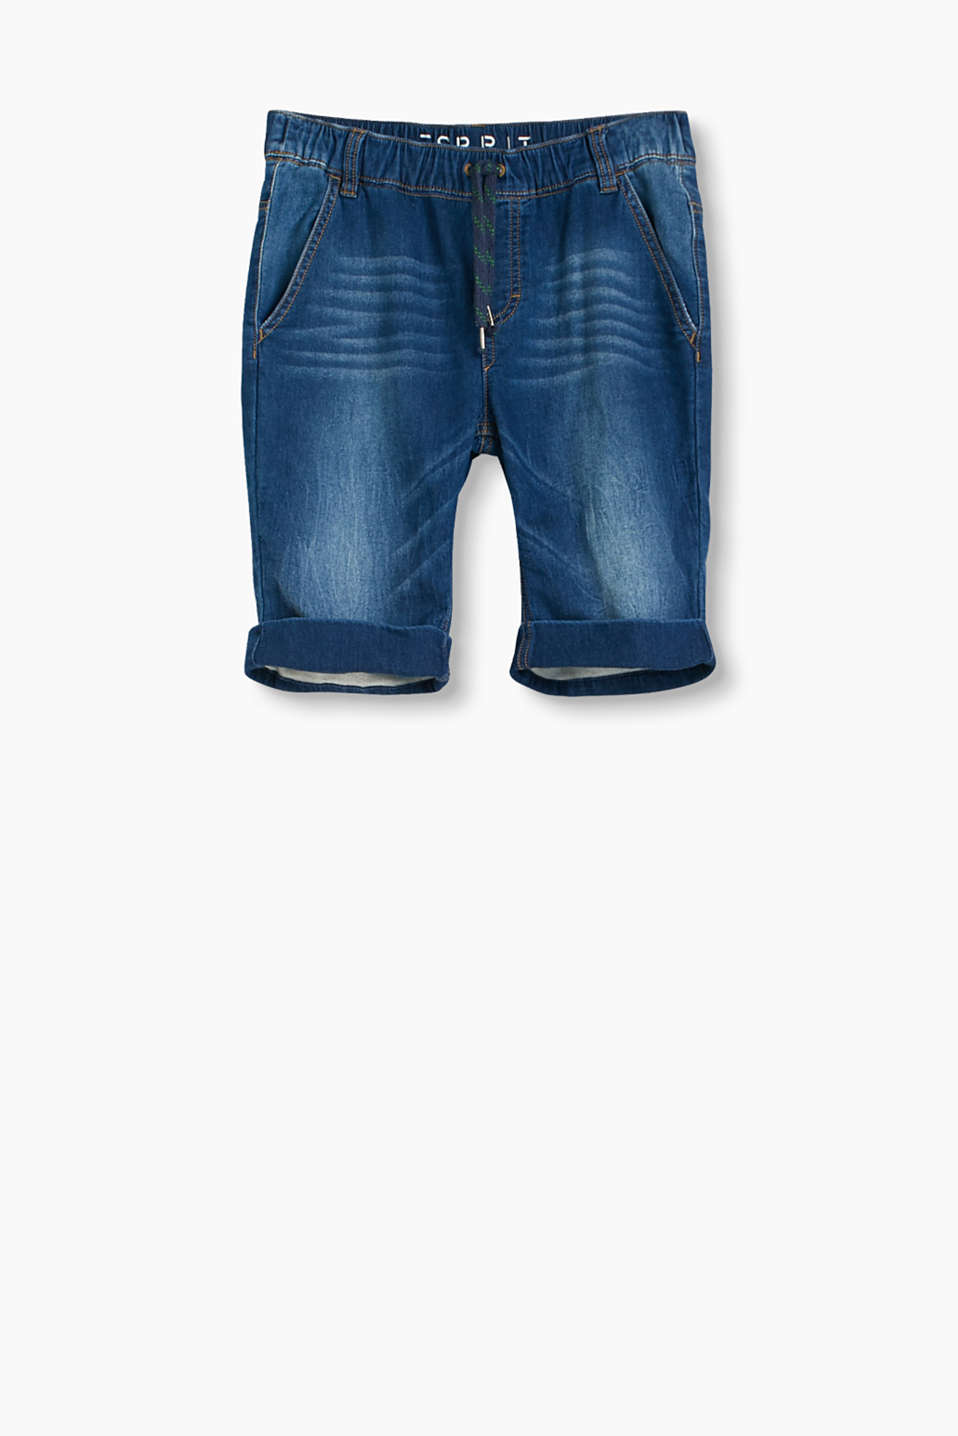 Shorts with elasticated waistband and casual washed-out effects in sweat-look denim